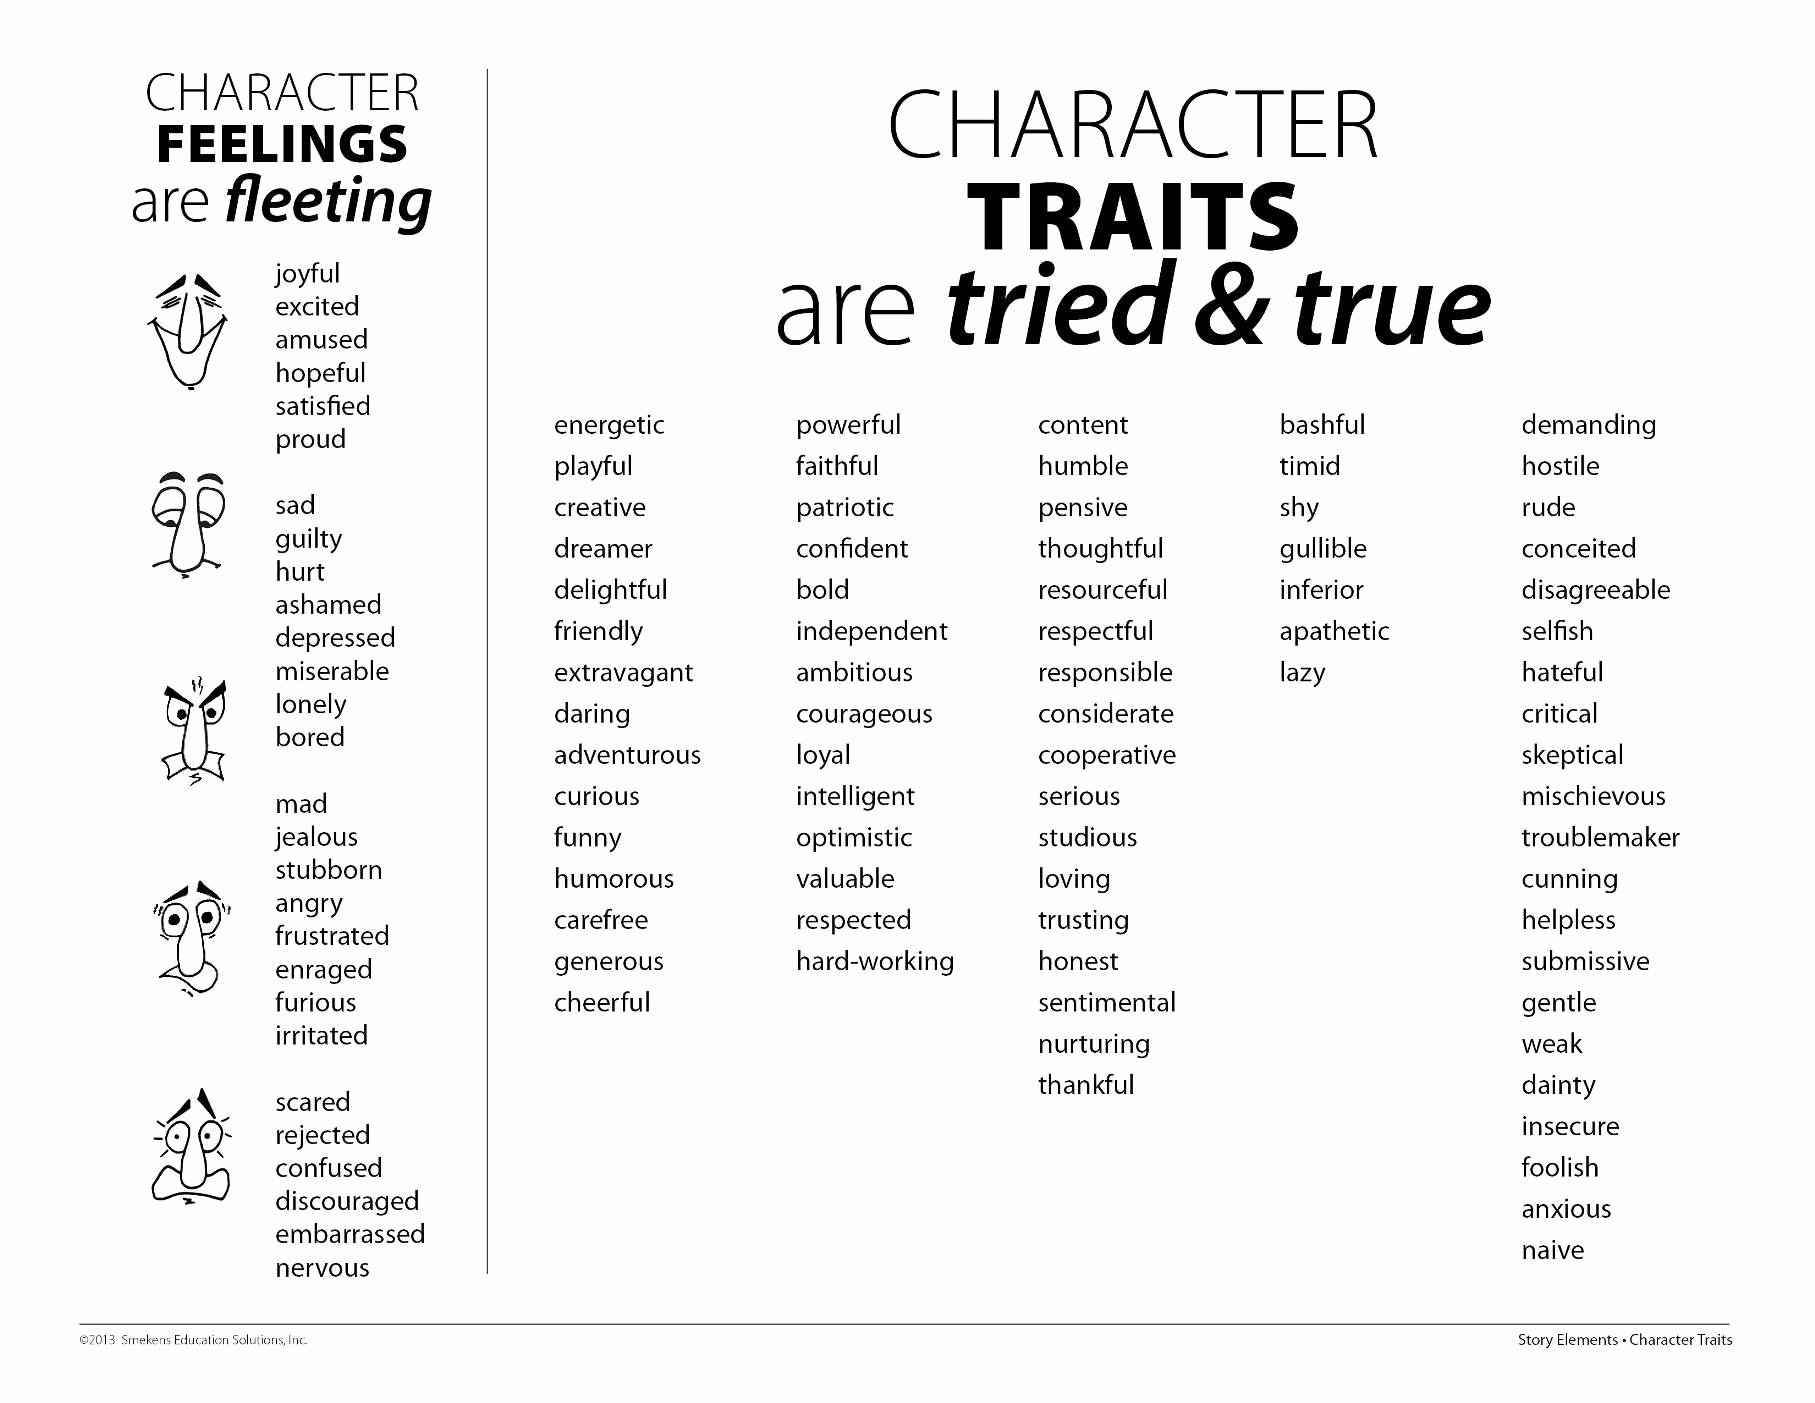 Character Traits Worksheet Pdf New Clarify Character Traits Versus Feelings